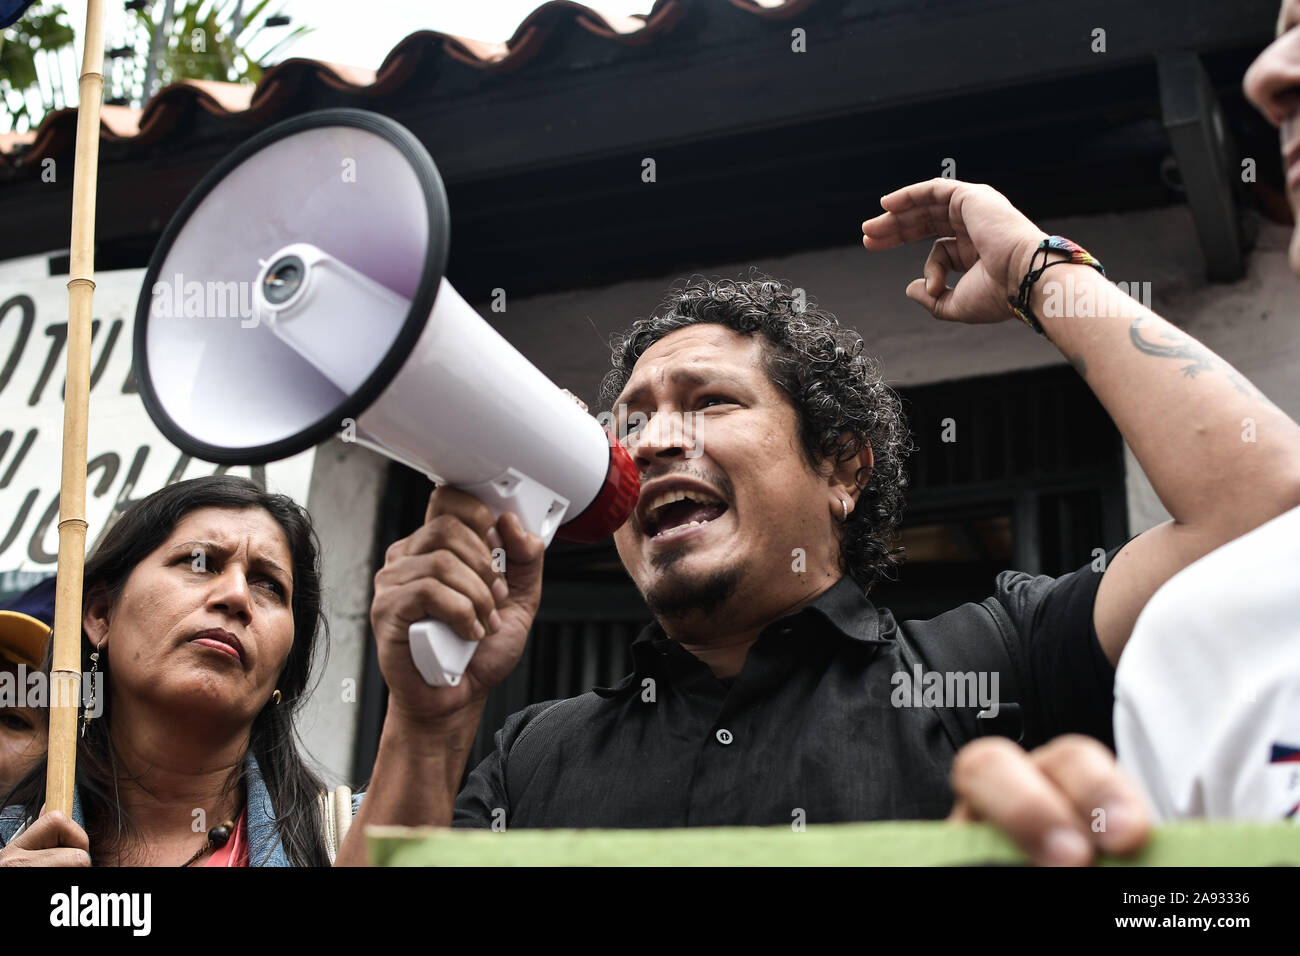 Supporter shouting on a megaphone during the protest.Supporters of social movements and Venezuelan communist youth protest in support of former president, Evo Morales in front of the Bolivian embassy. The president of the country resigned after strong protests against his re-election and for refusing to conduct an audit of votes. Stock Photo